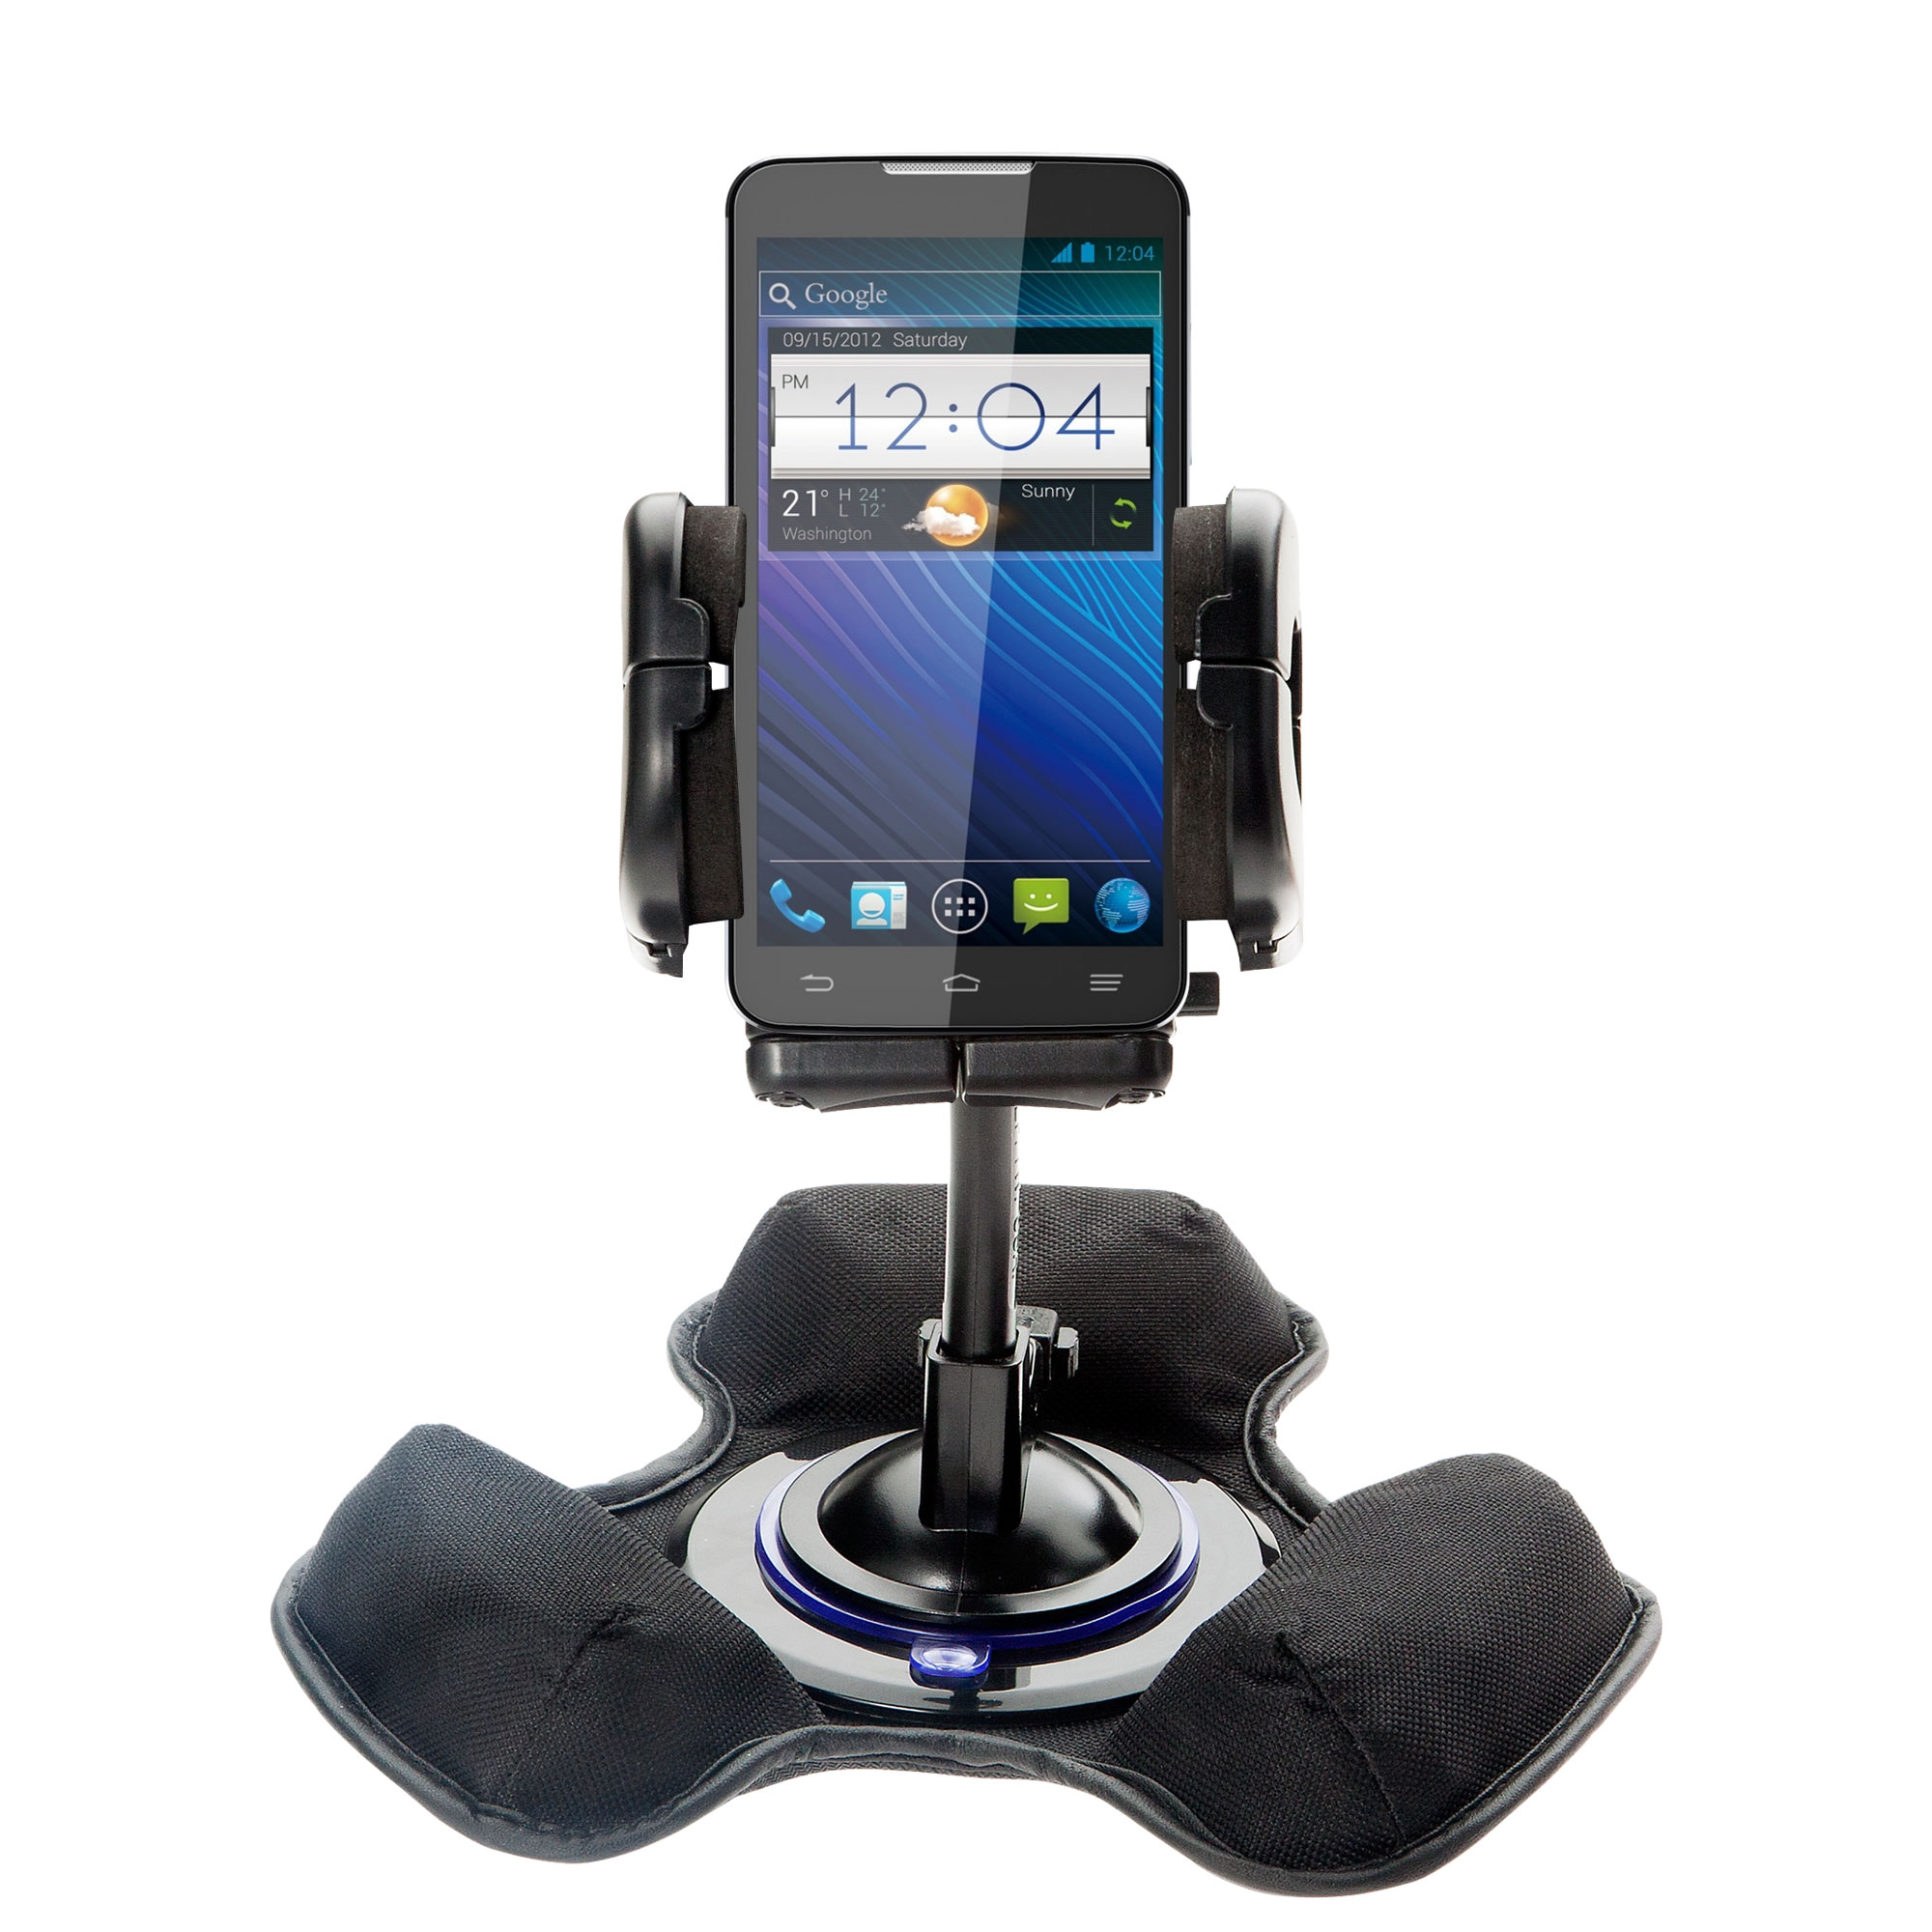 Car / Truck Vehicle Holder Mounting System for ZTE Awe Includes Unique Flexible Windshield Suction and Universal Dashboard Mount Options